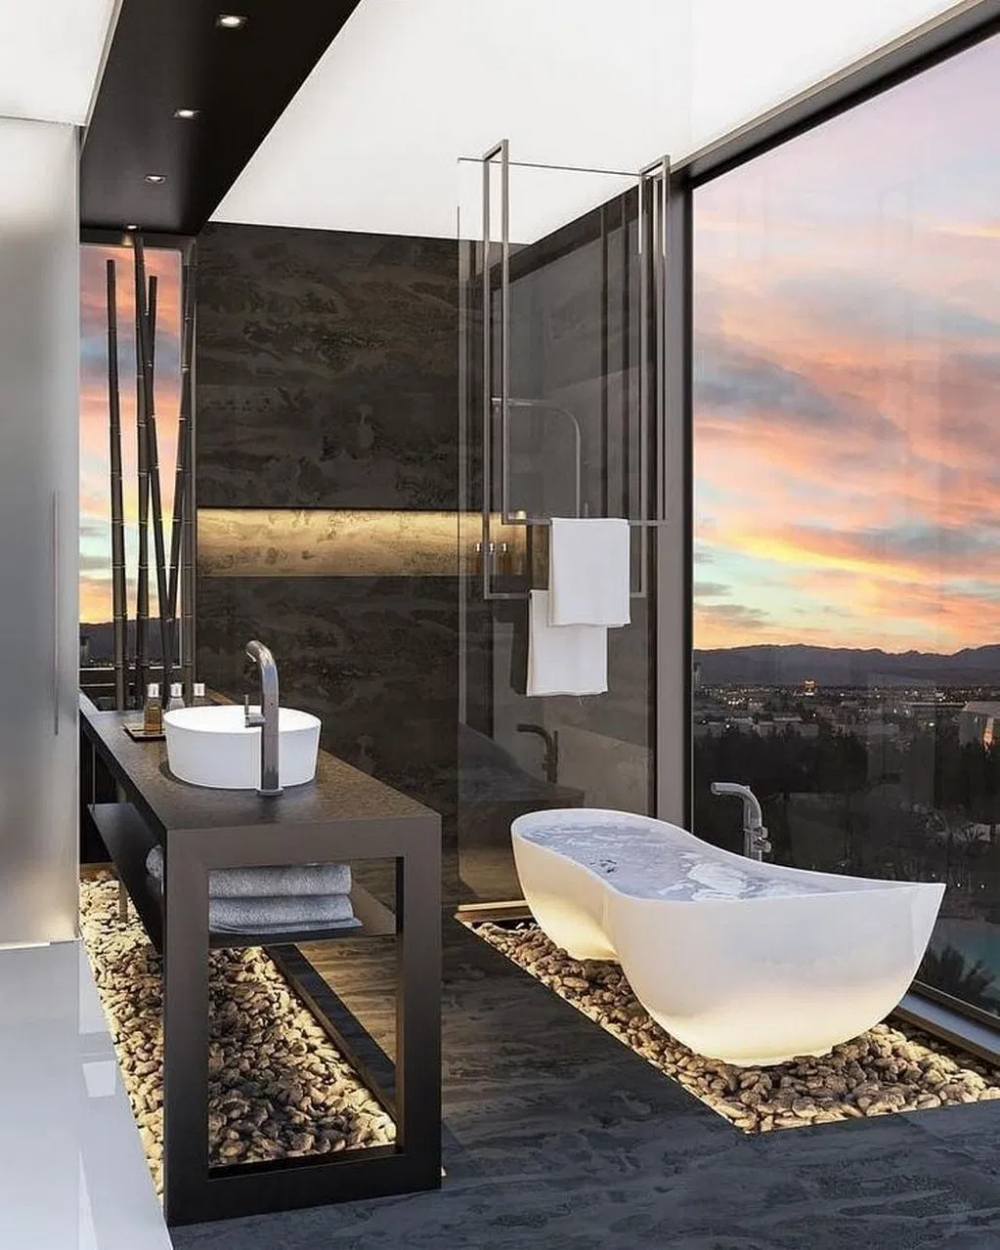 15 Stylish Bathroom Design Ideas That Can Be Applied To Your Home 2 Bathroomdesign Bedroomideas Bathroom Interior Design Modern Bathroom Design House Design